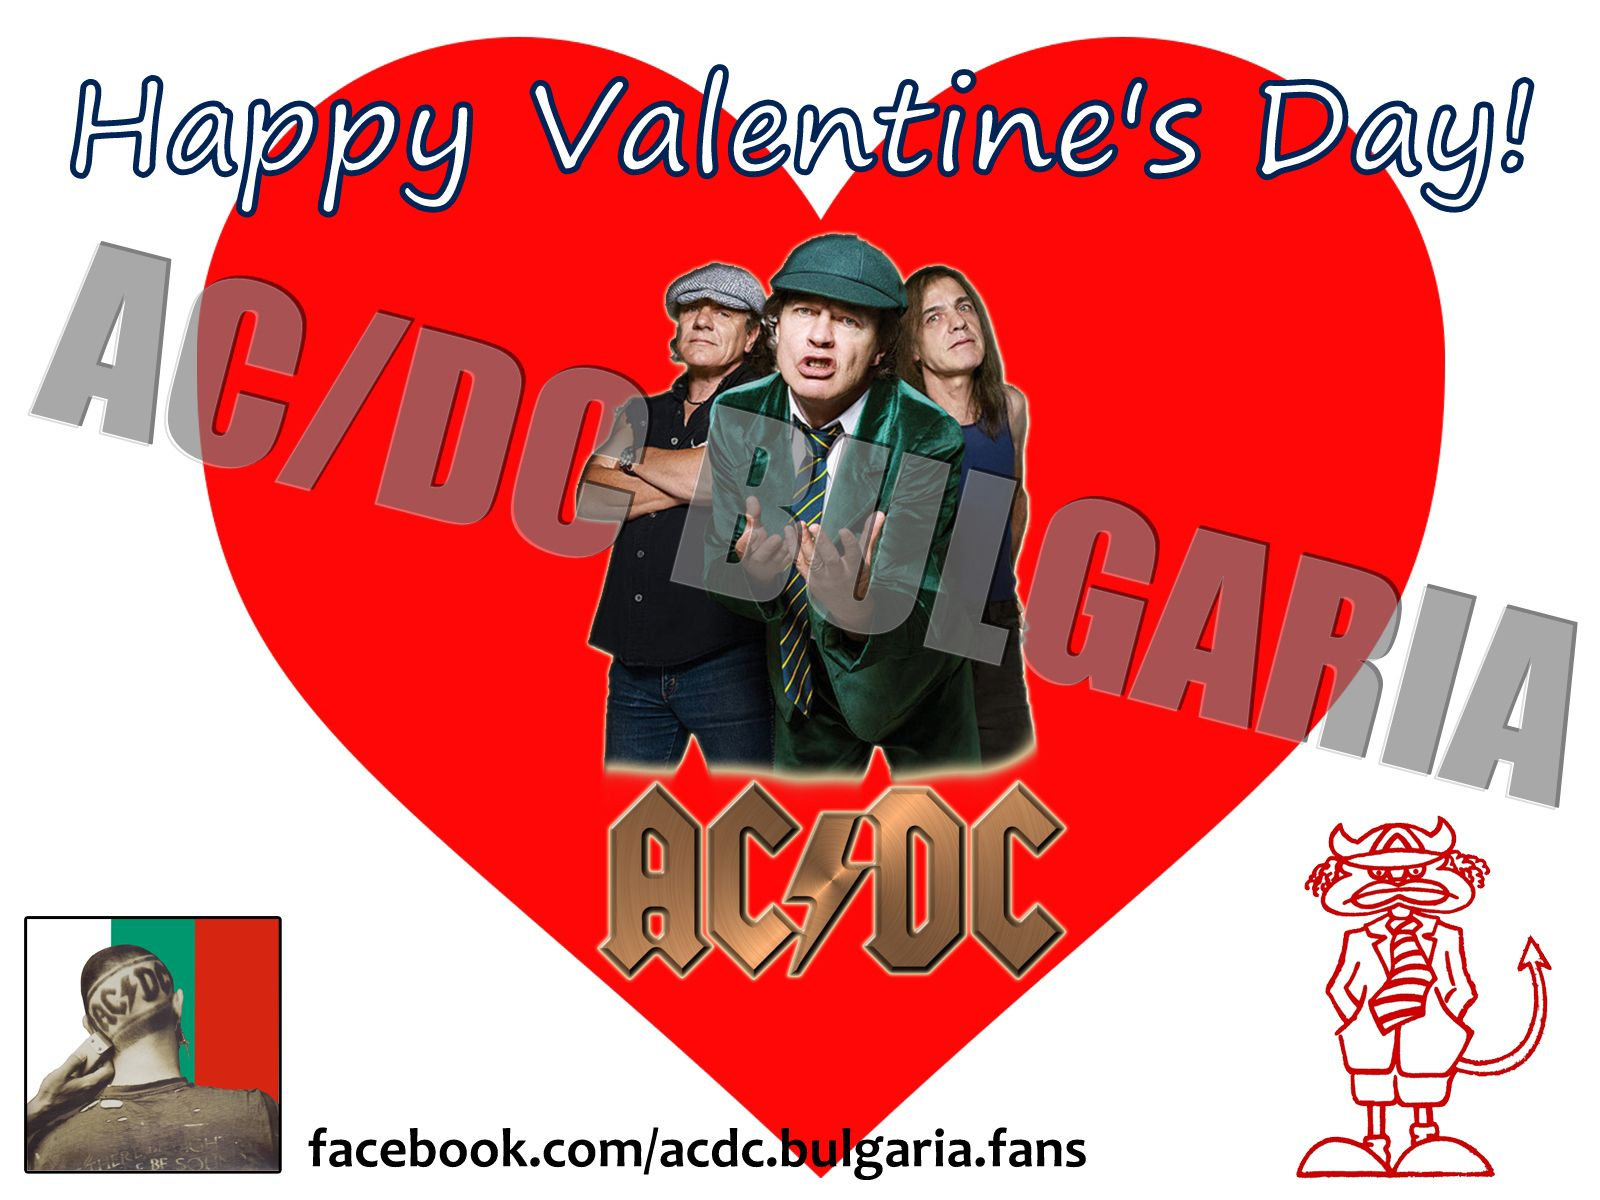 happy valentines day we salute you acdc bulgaria